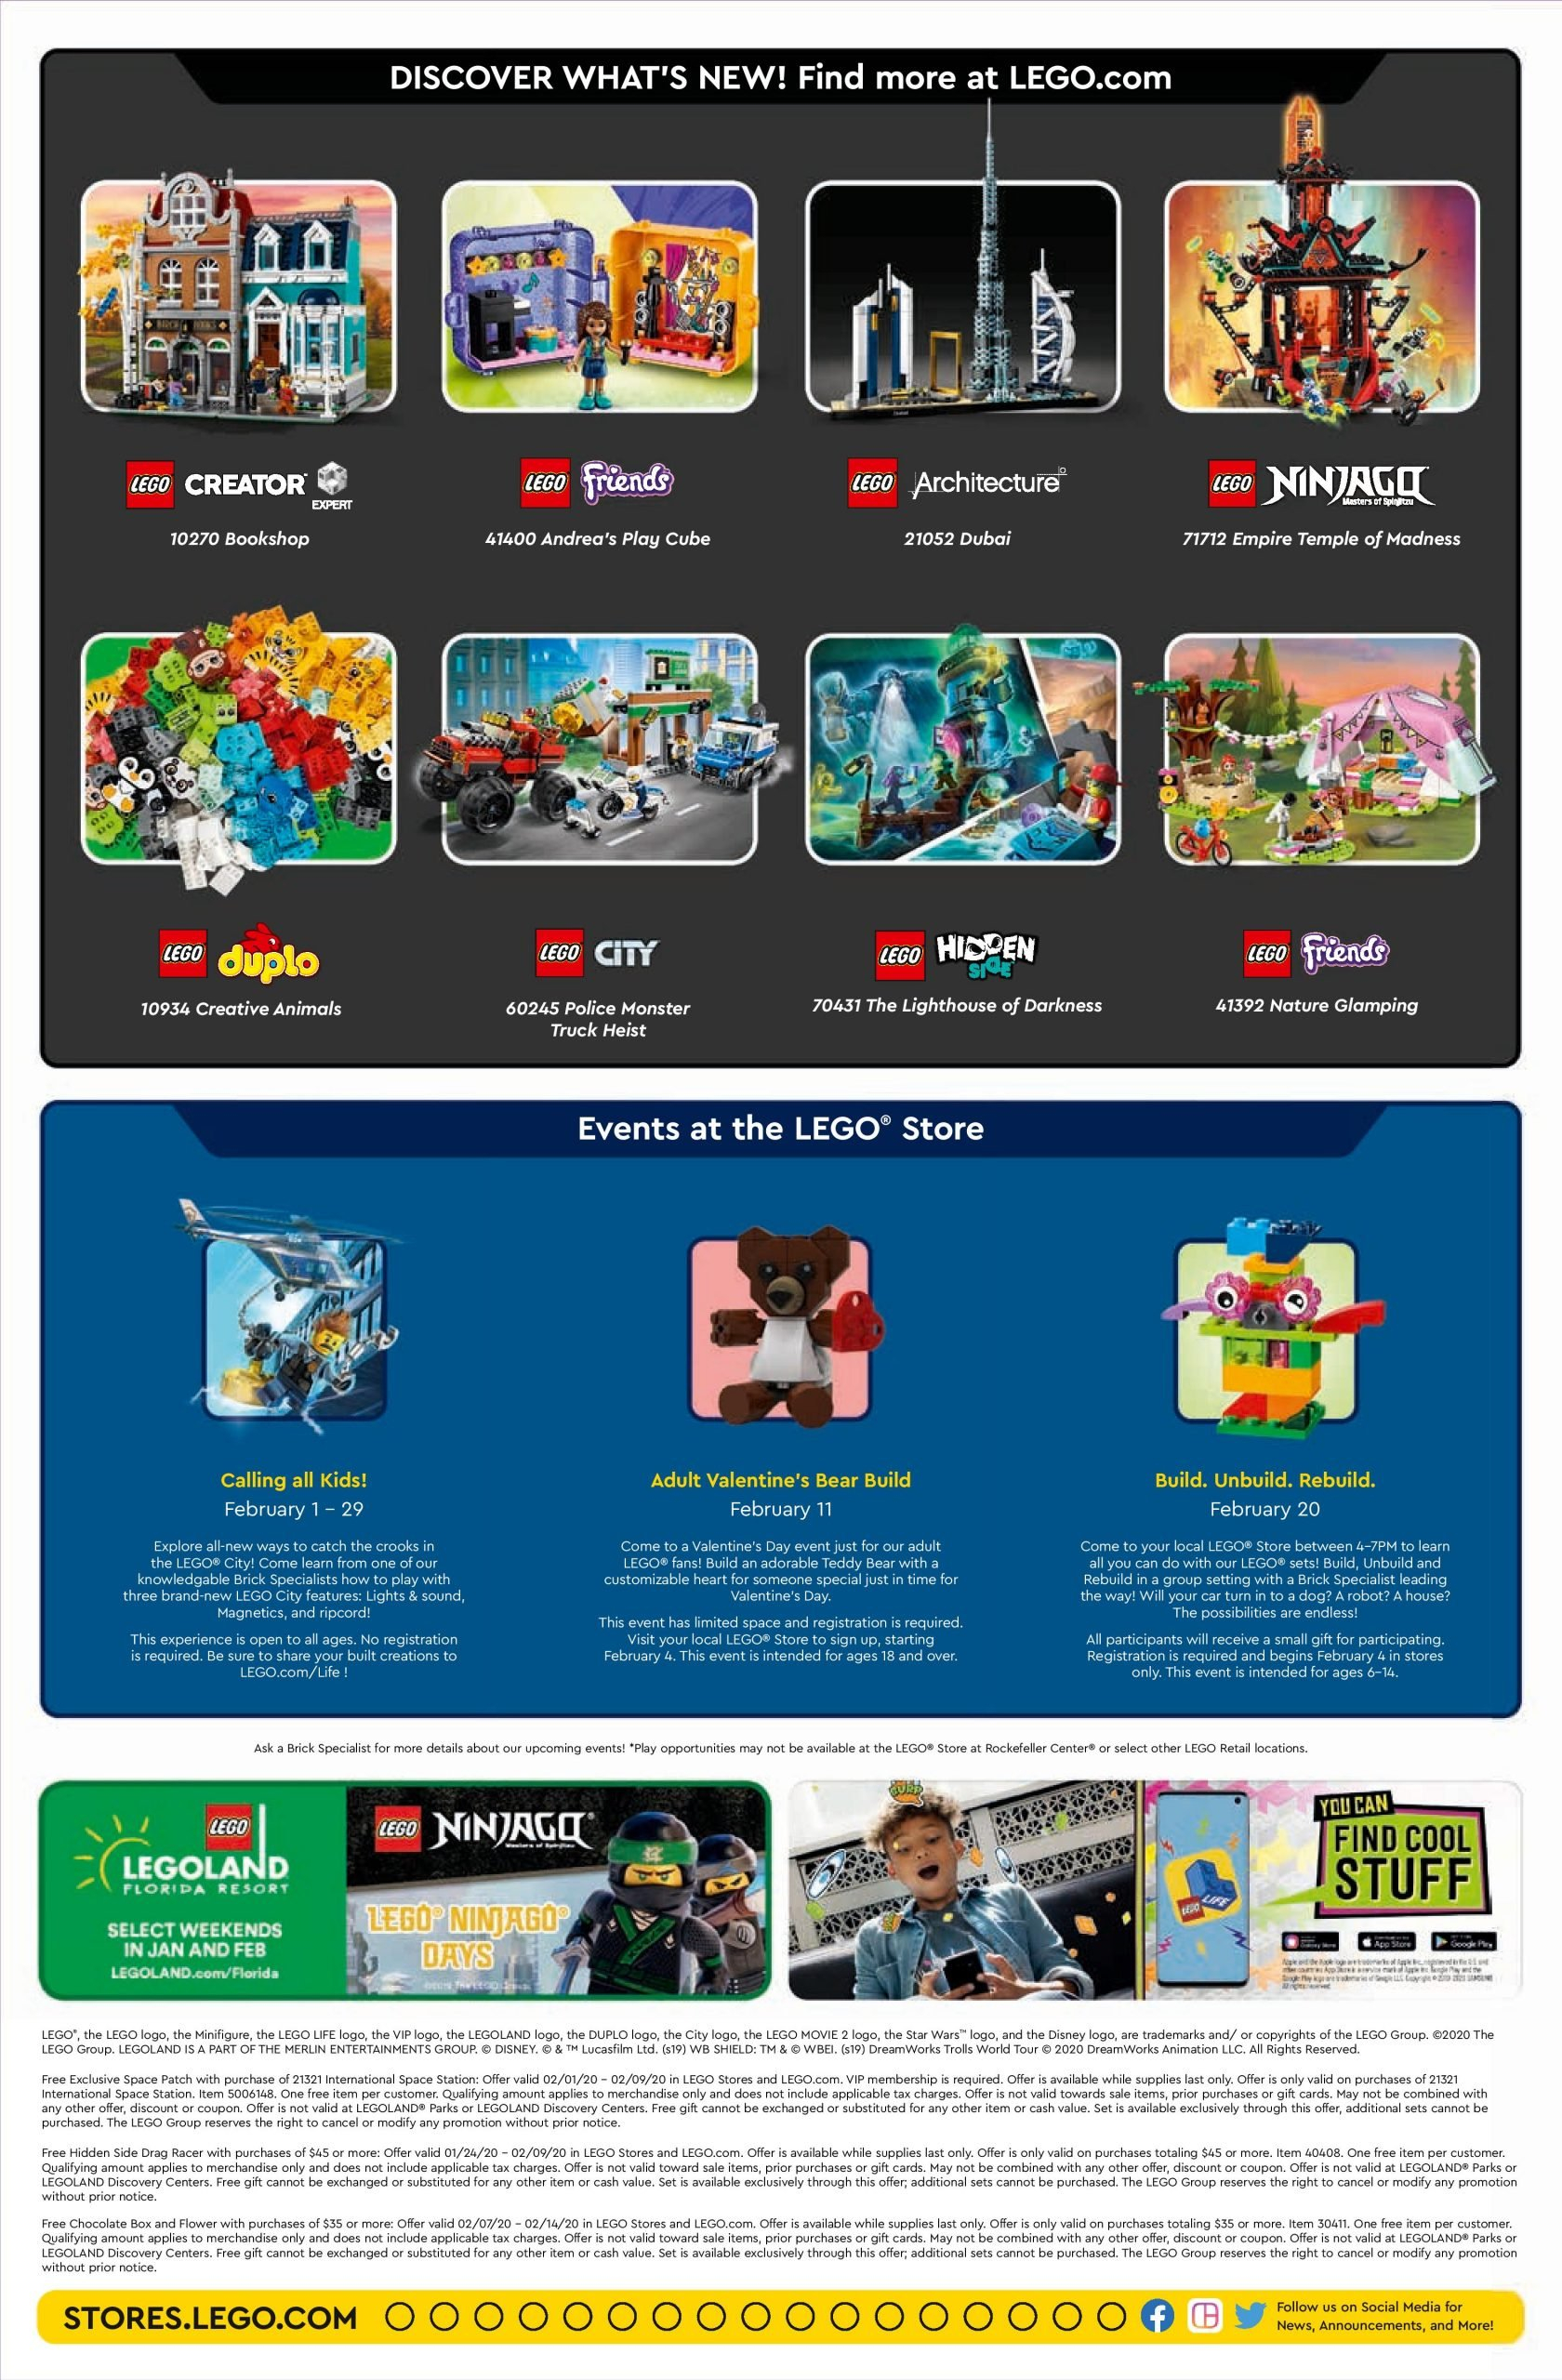 Lego February 2020 Store Calendar Promotions & Events - The Calendar Three Monsts Temple